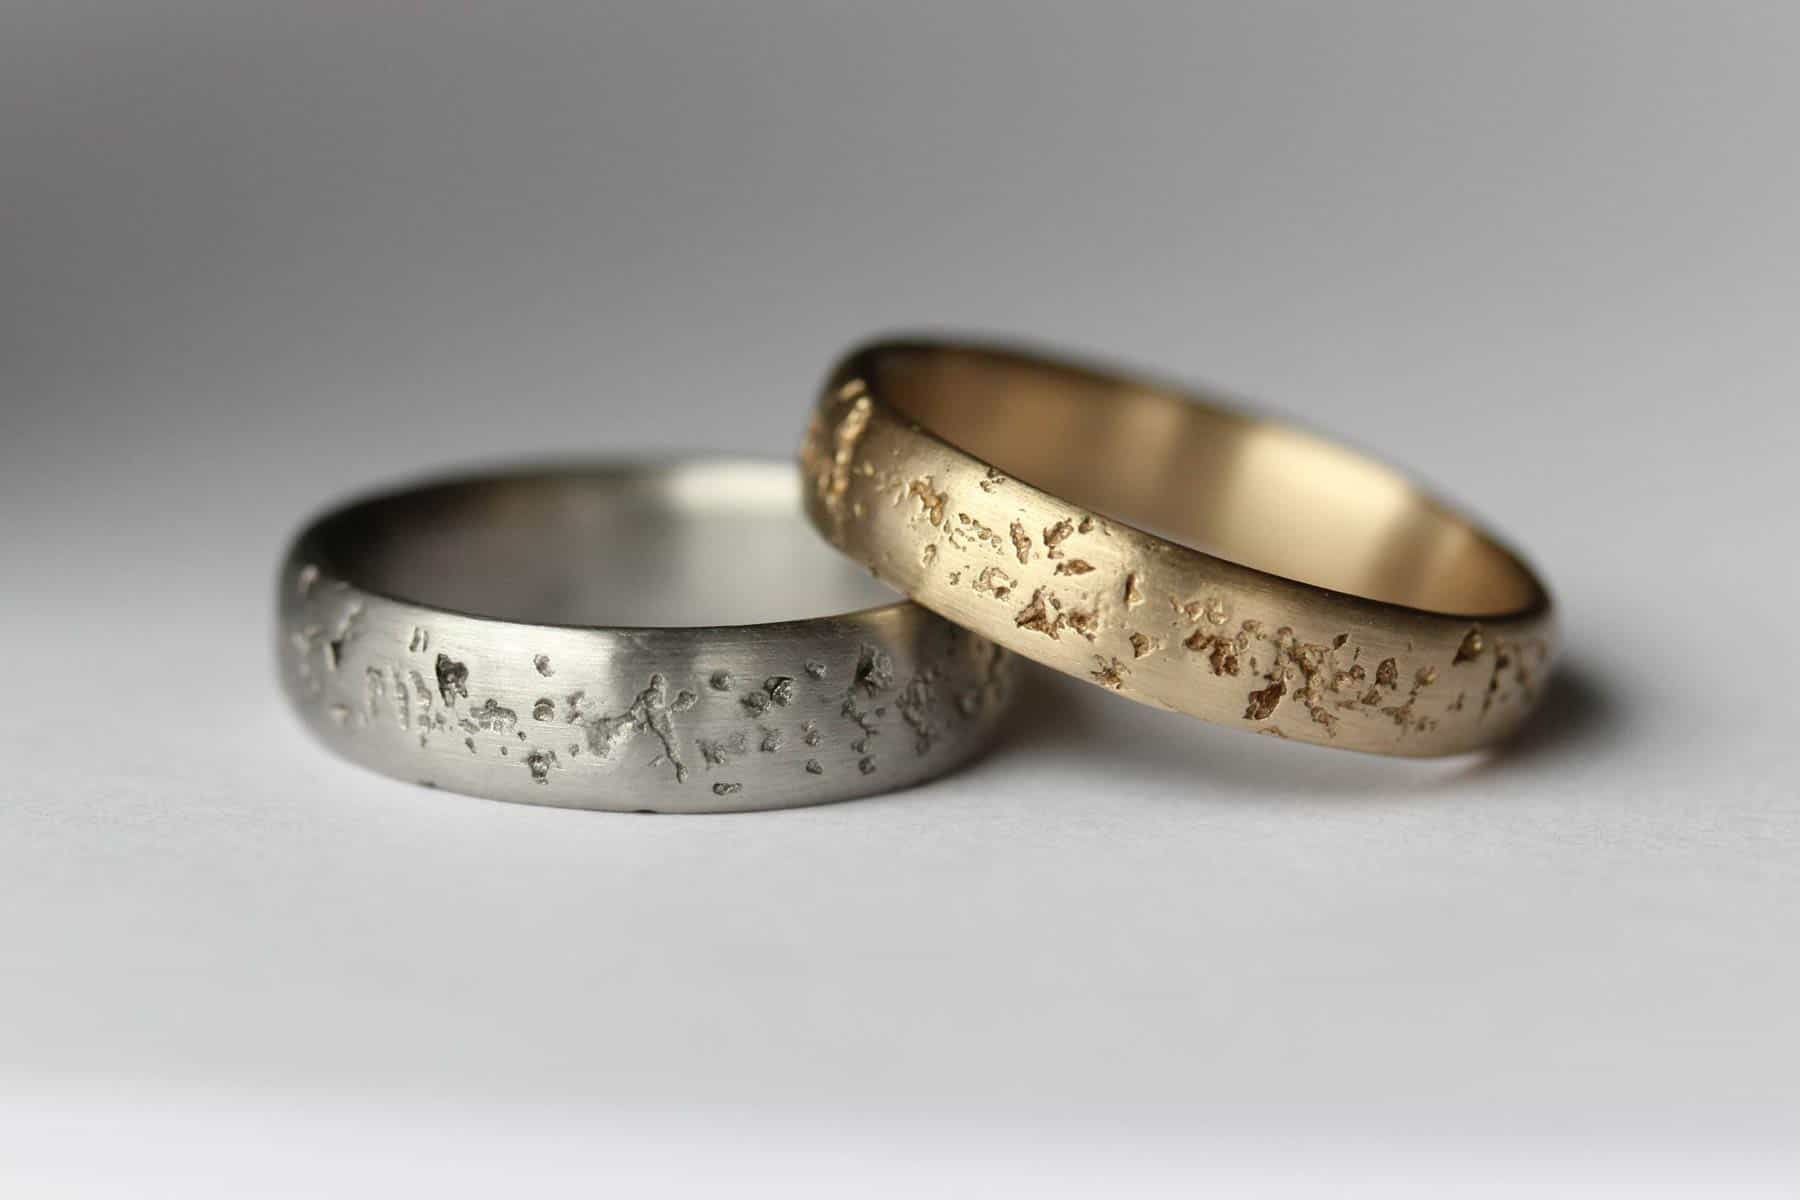 silver and gold textured handmade wedding bands